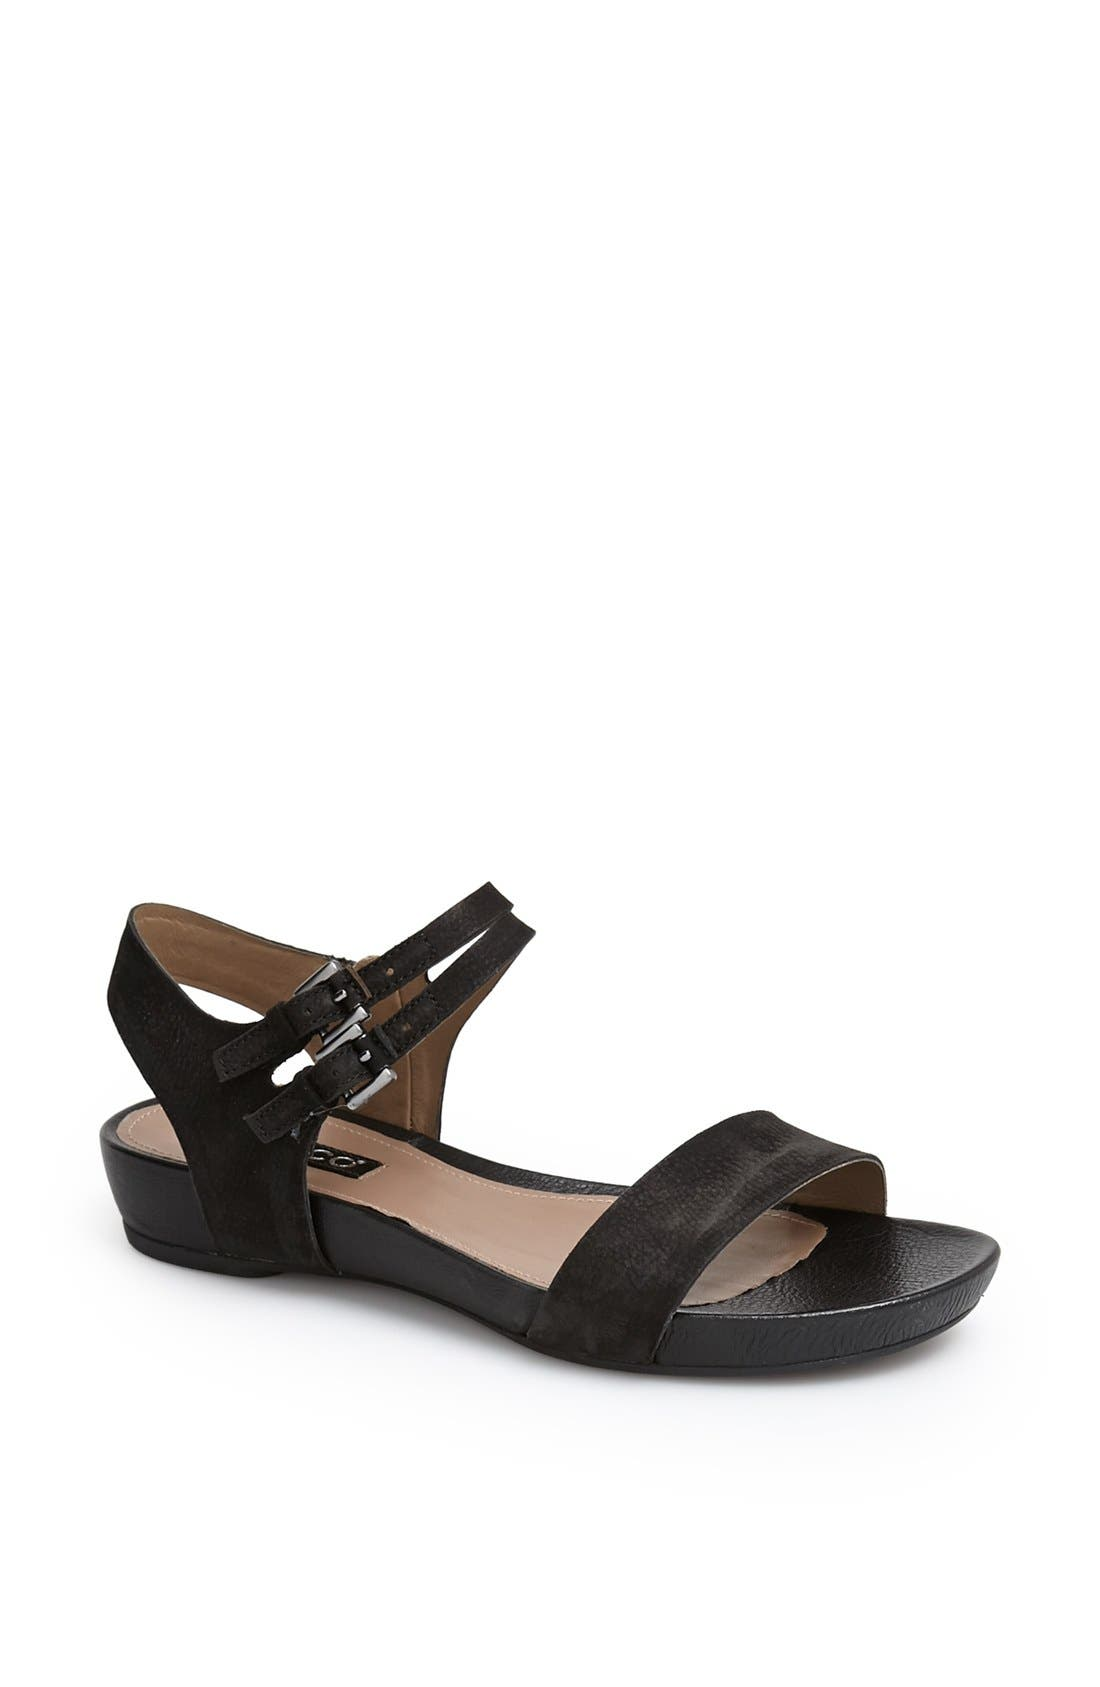 Main Image - ECCO 'Rungsted' Leather Sandal